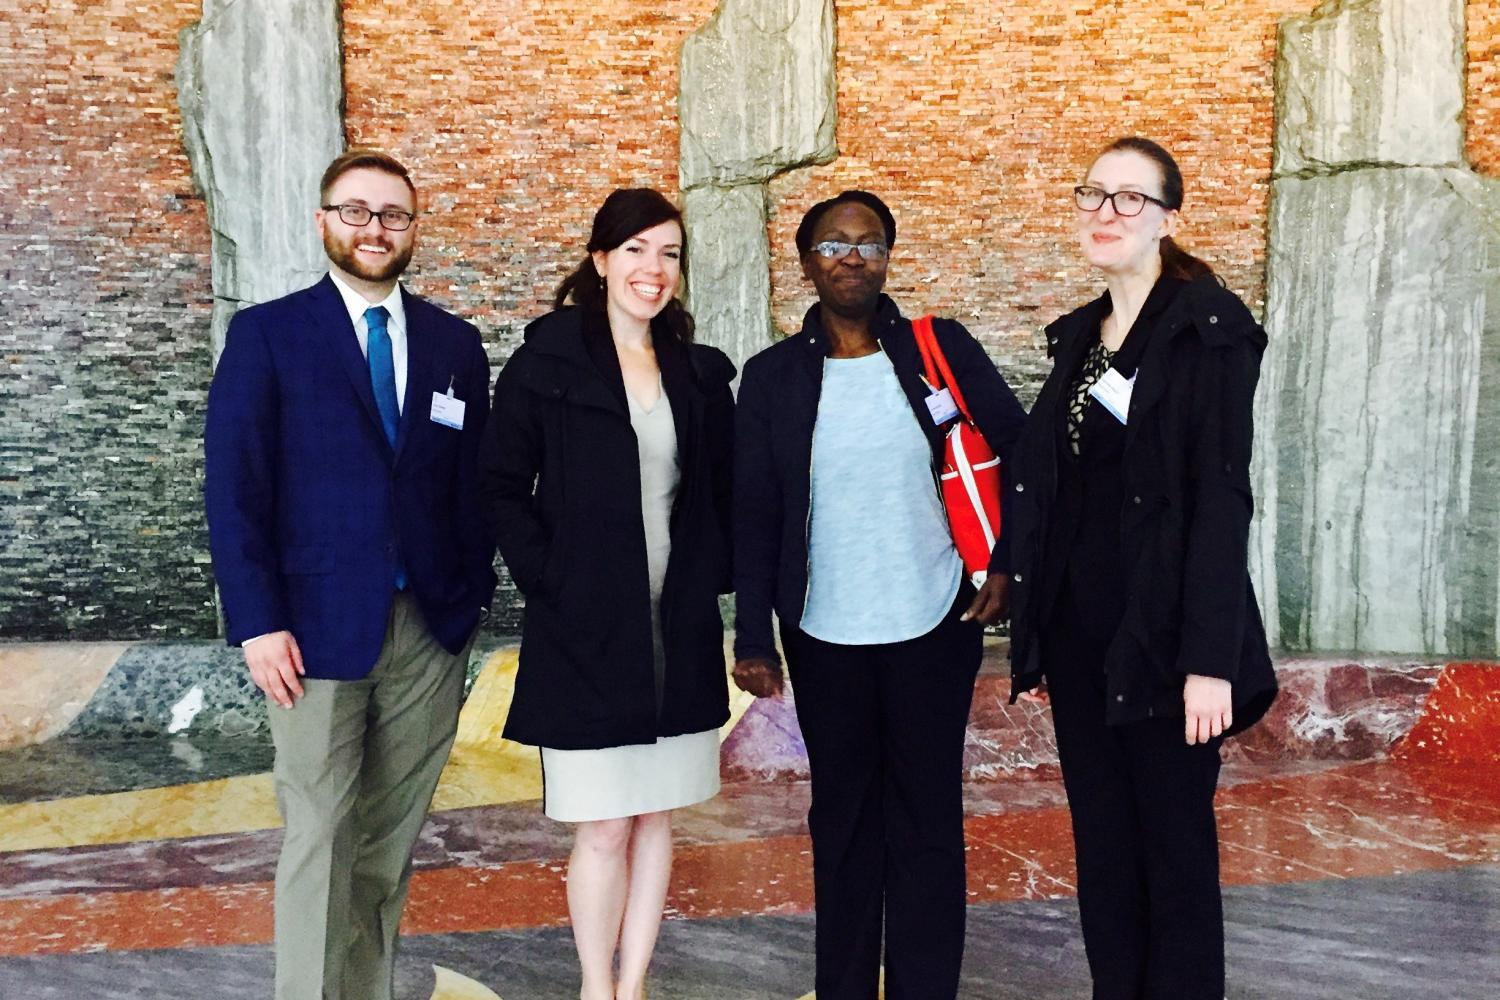 Luke Ewing, Lindsey Knapton, Caroline Ncube, and Gabrielle Daley at the World Intellectual Property Organization in Geneva, Switzerland.